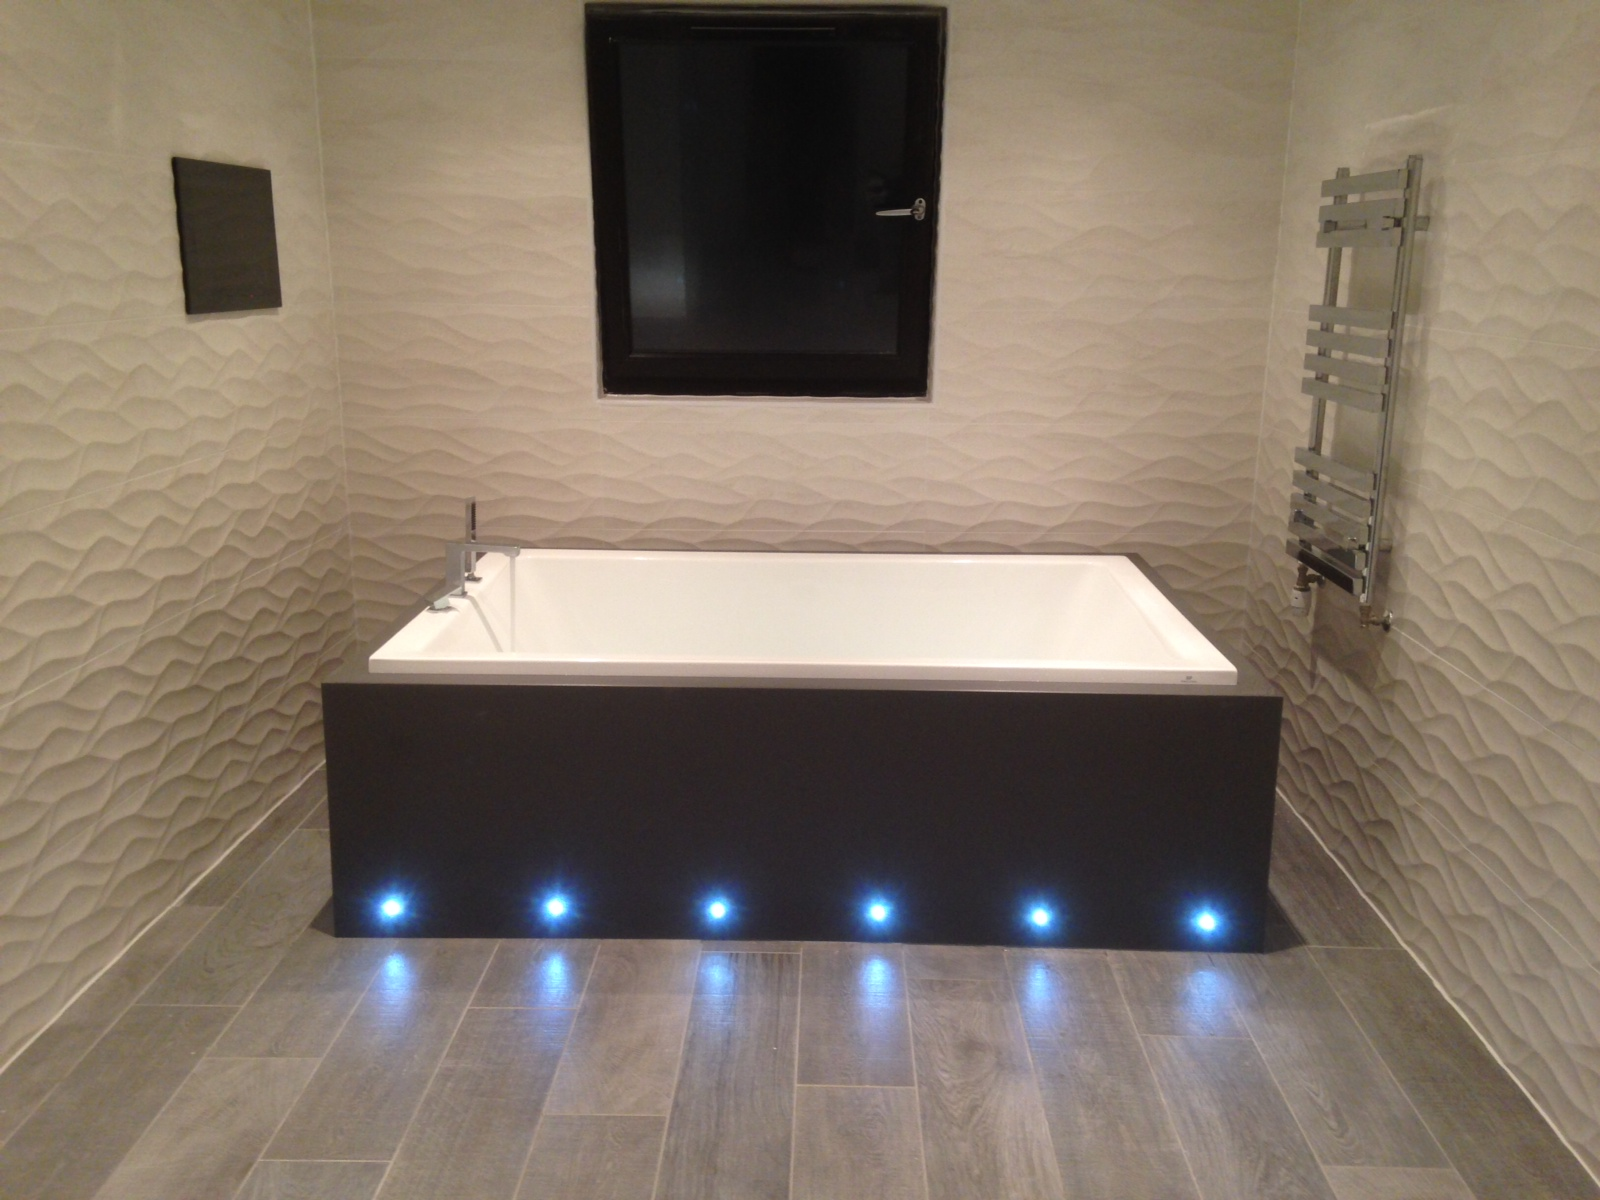 Corian - Bespoke Solid Surfaces Limited